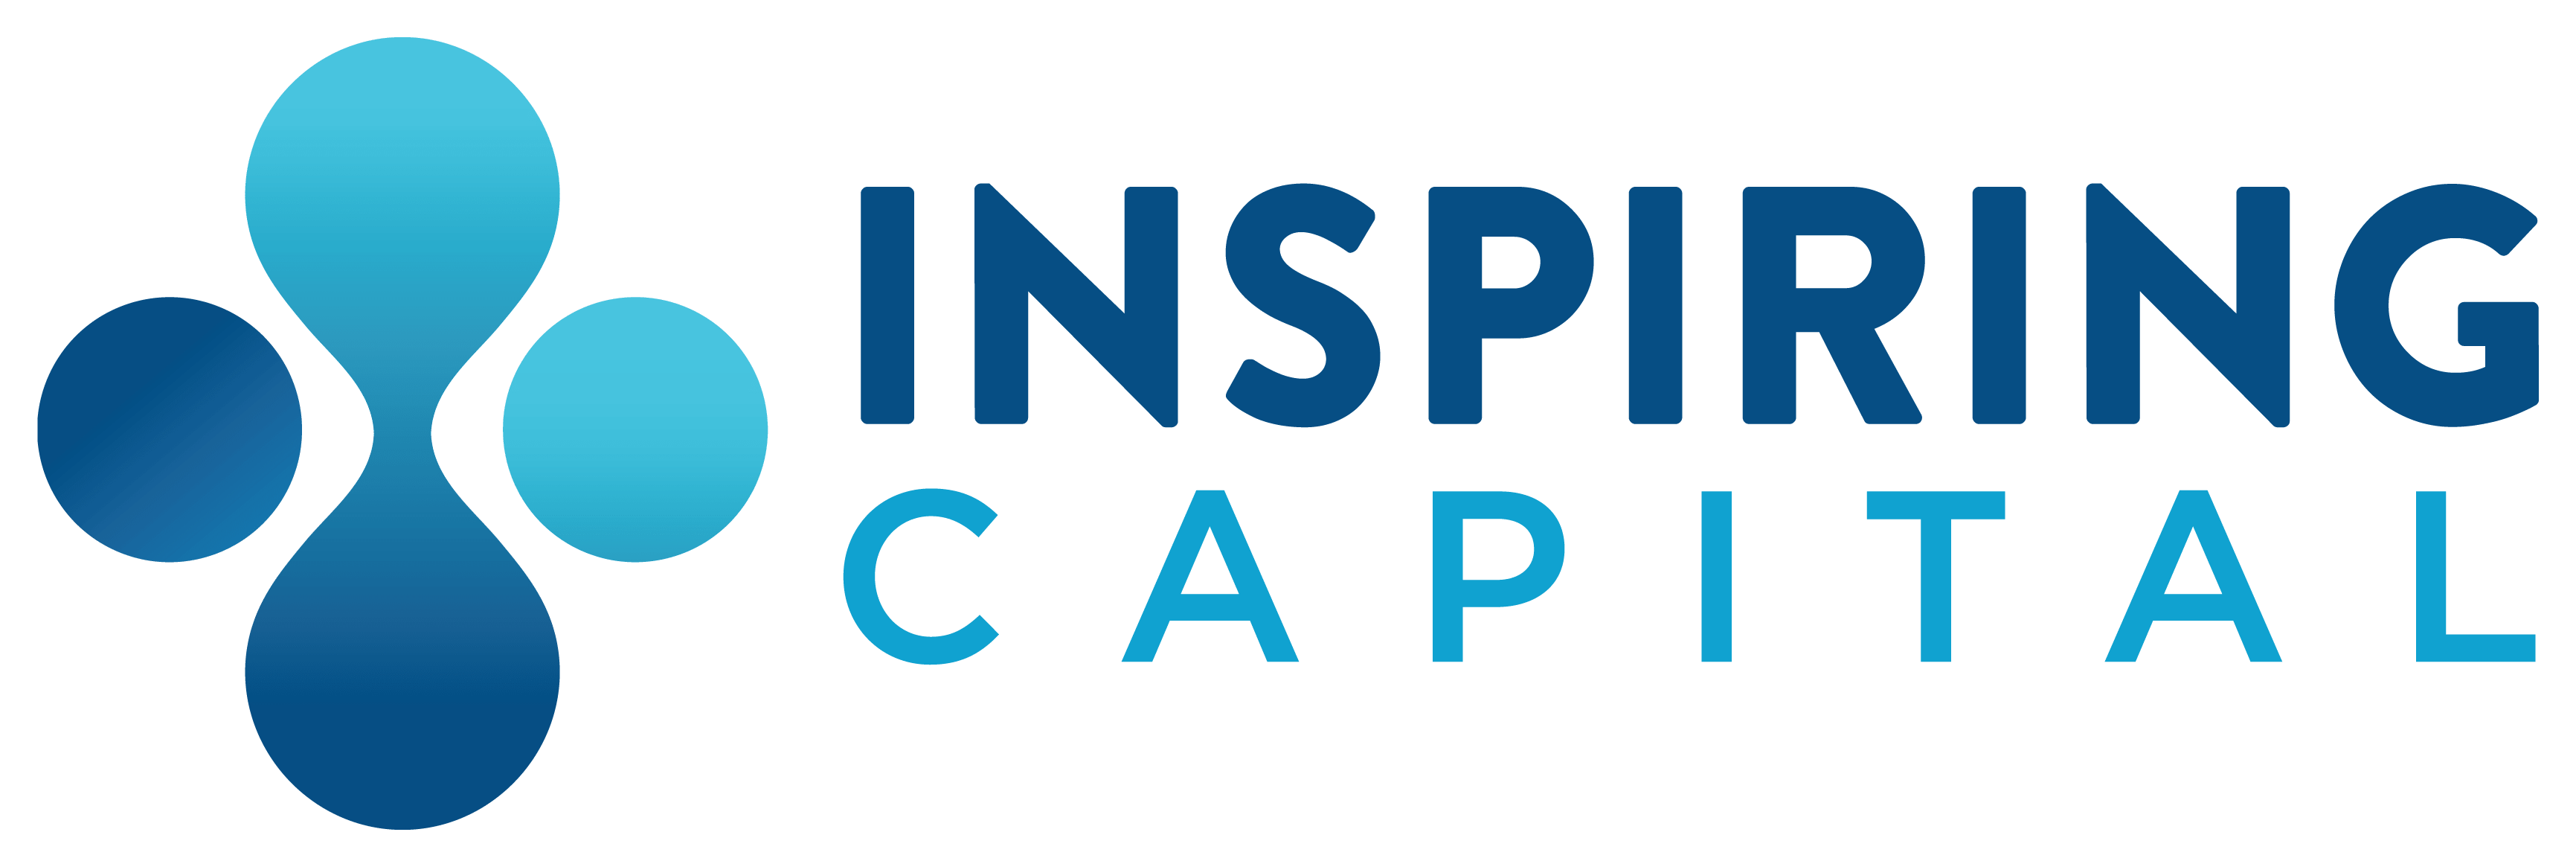 Inspiring Capital and The Research Triangle Foundation